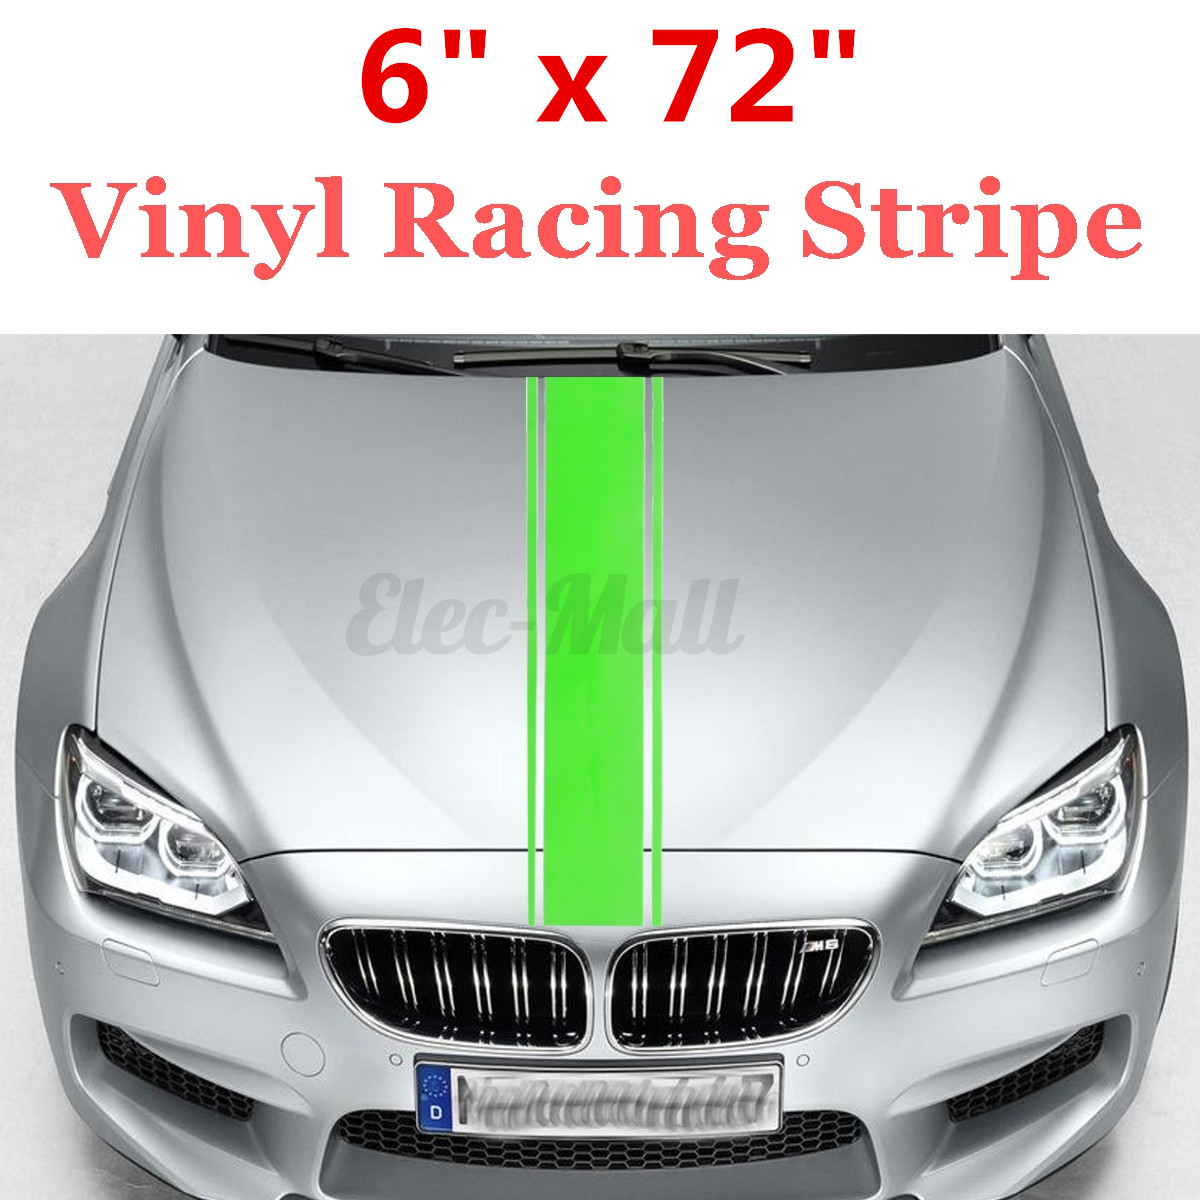 Details about universal 6x72 racing stripe vinyl pinstripe decal sticker car vehicle